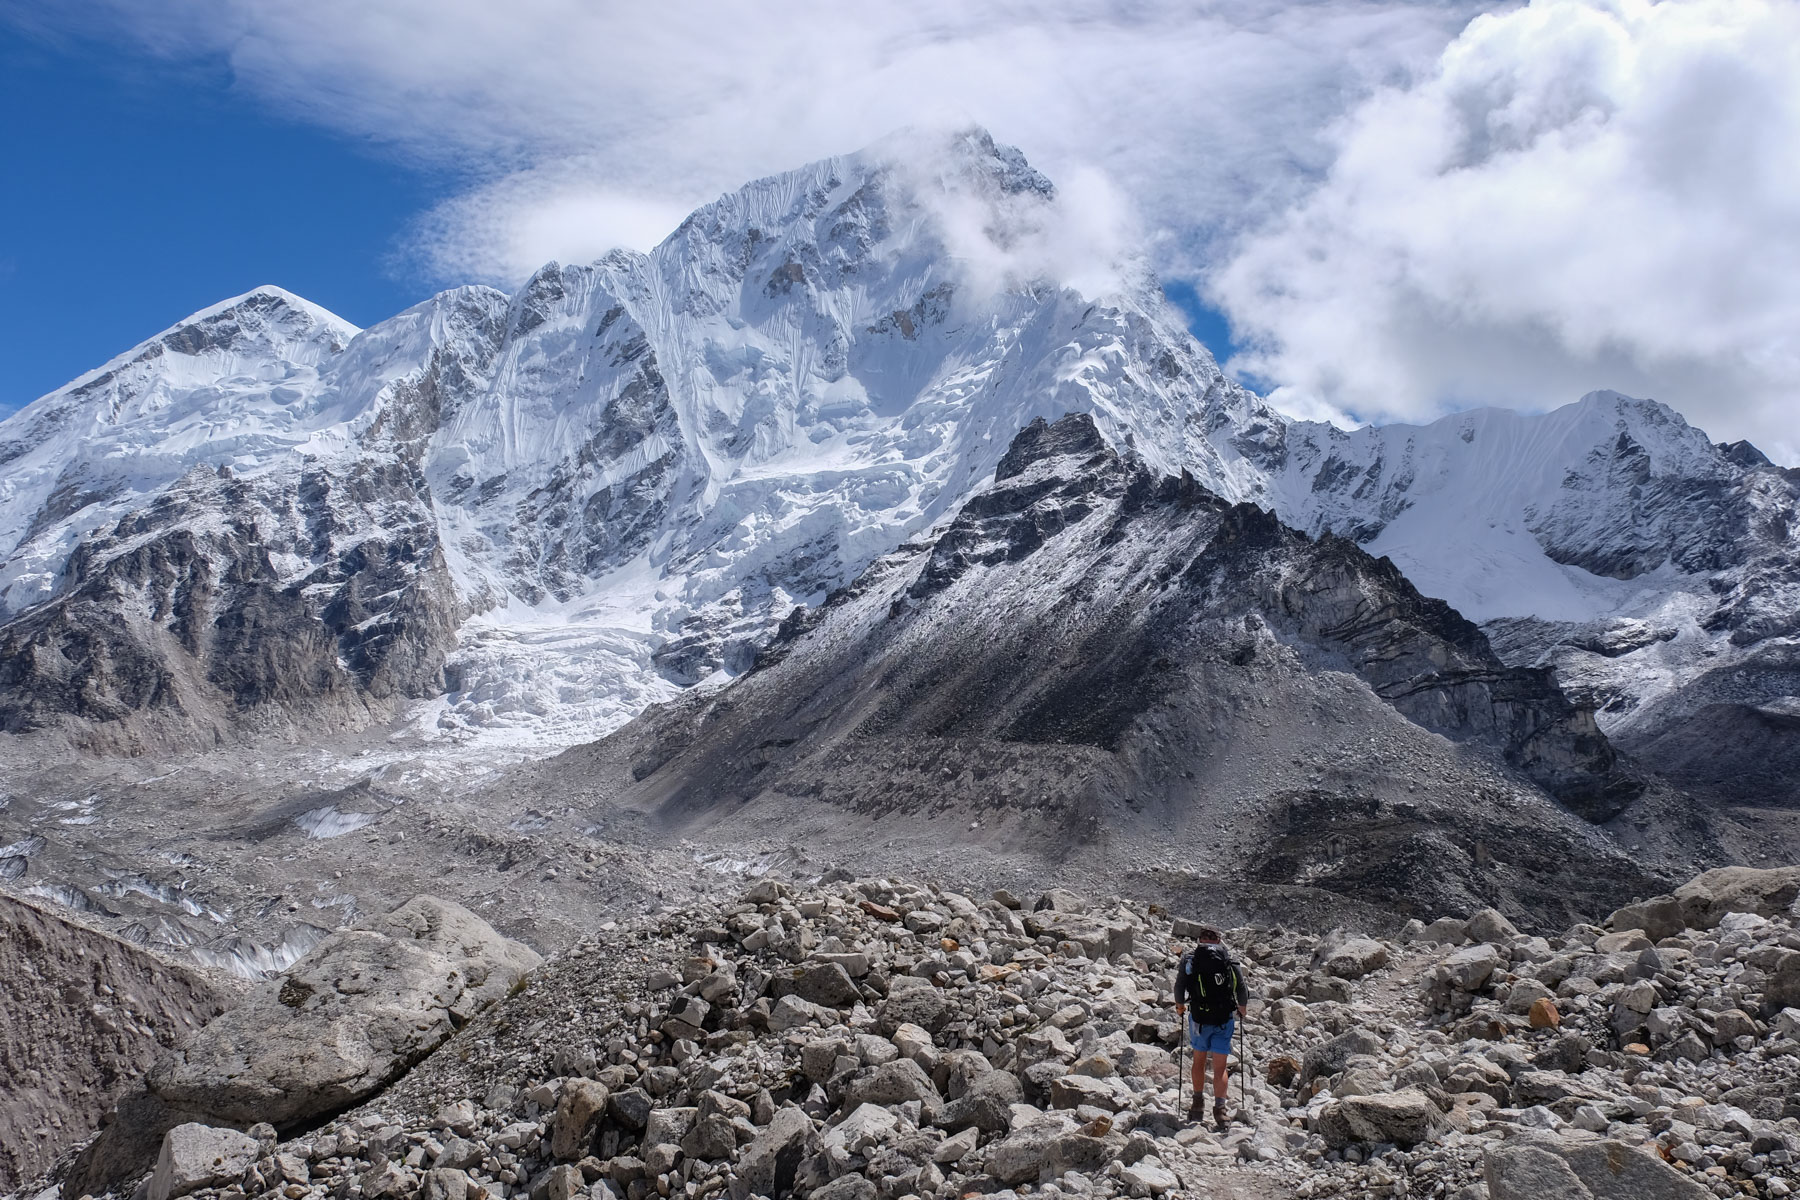 Kala Patthar & Gokyo, Everest 3 pass #3 27